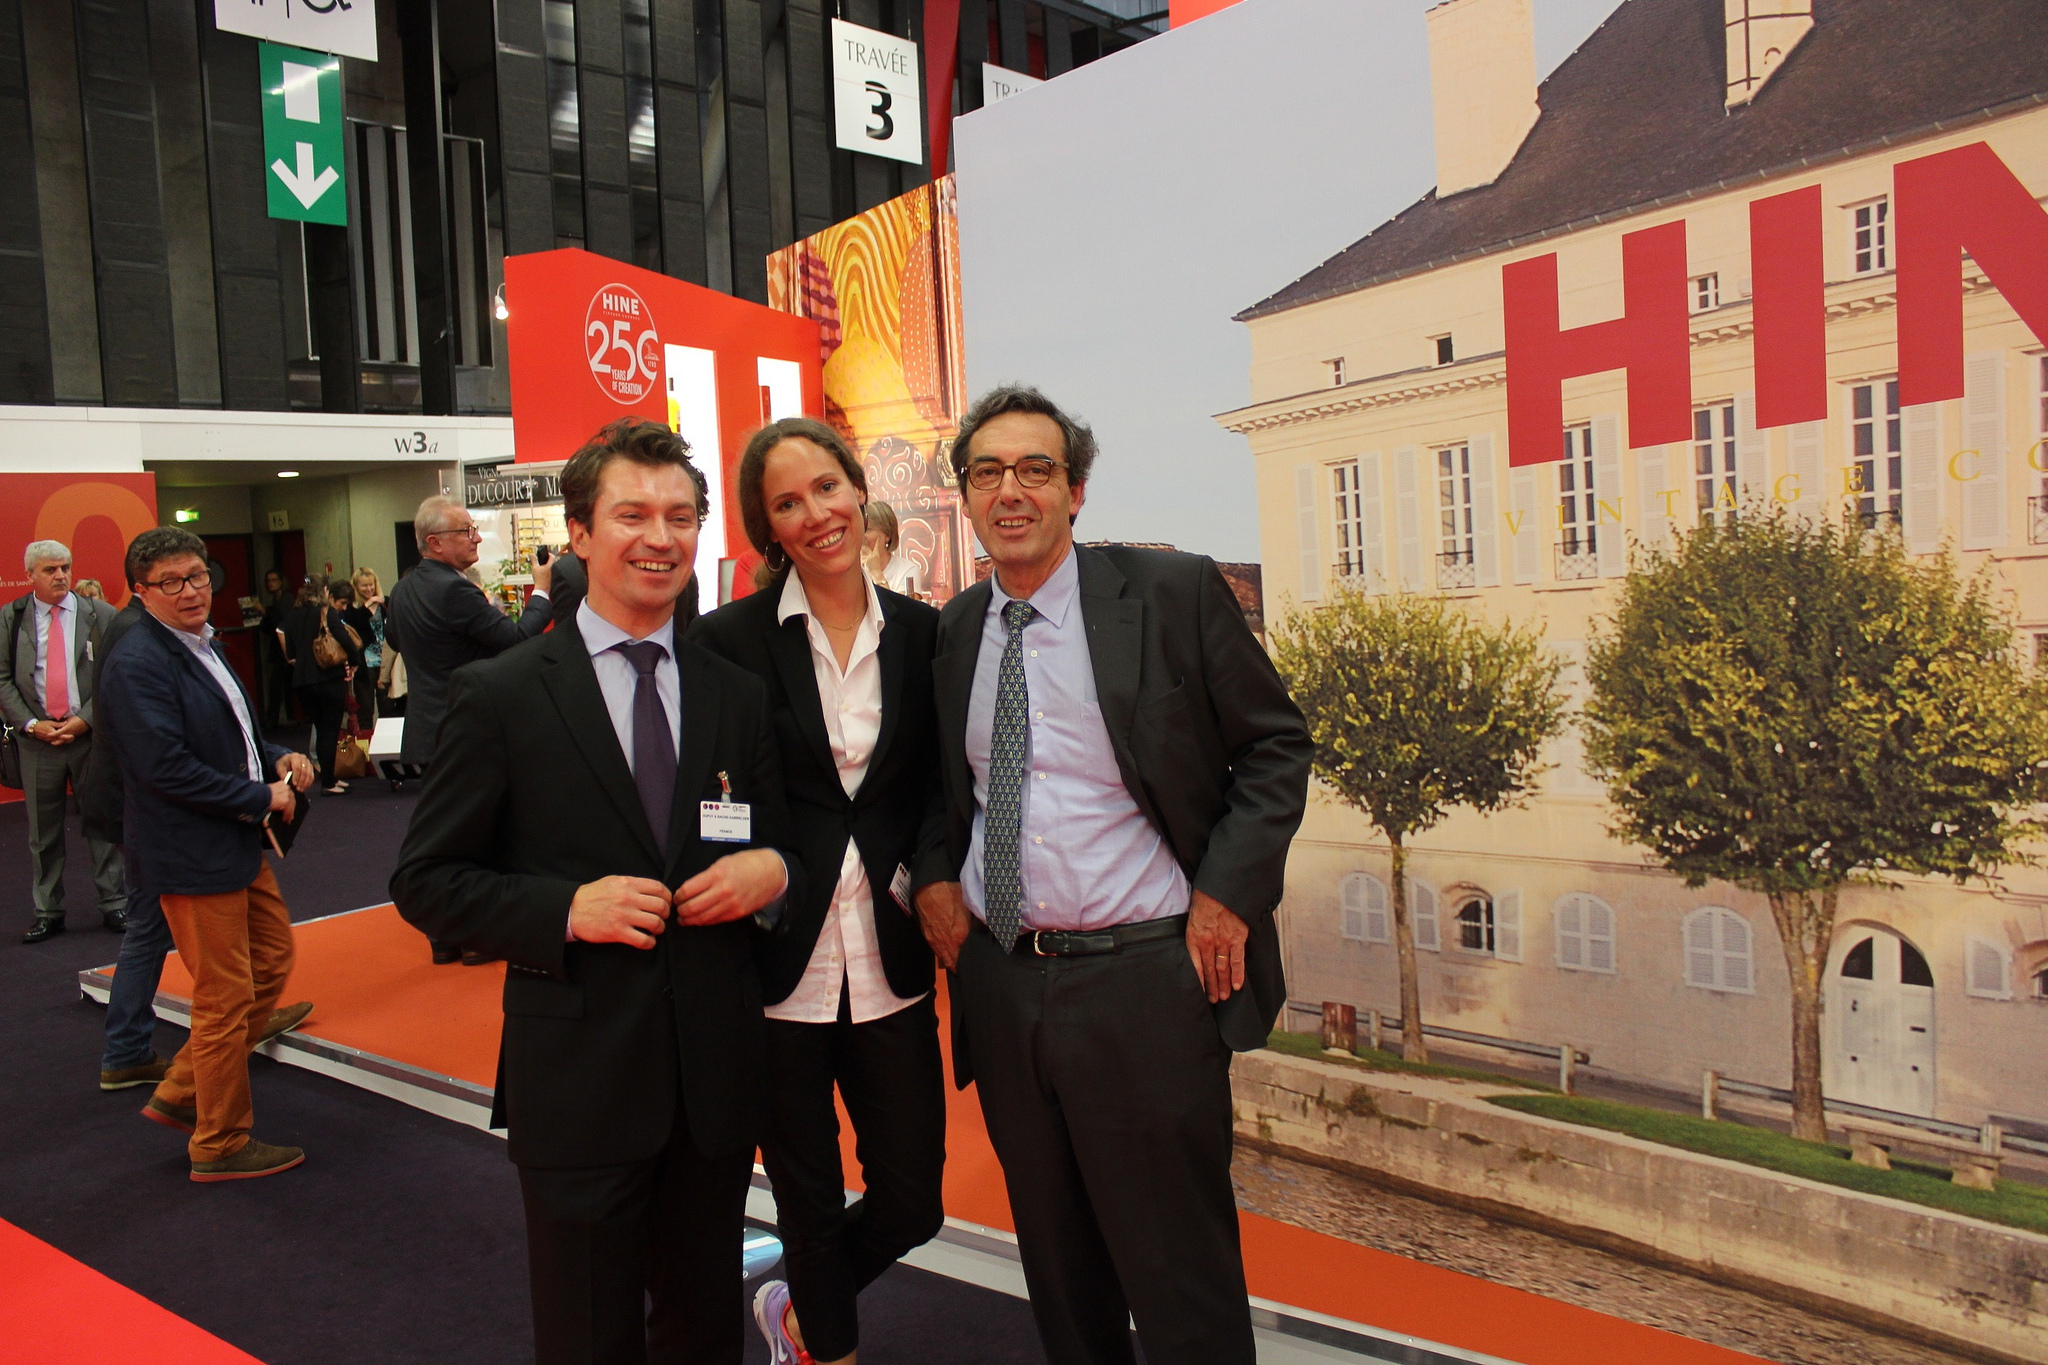 Sophie between Herve Bache-Gabrielsen and Francois Le Grelle from HINE